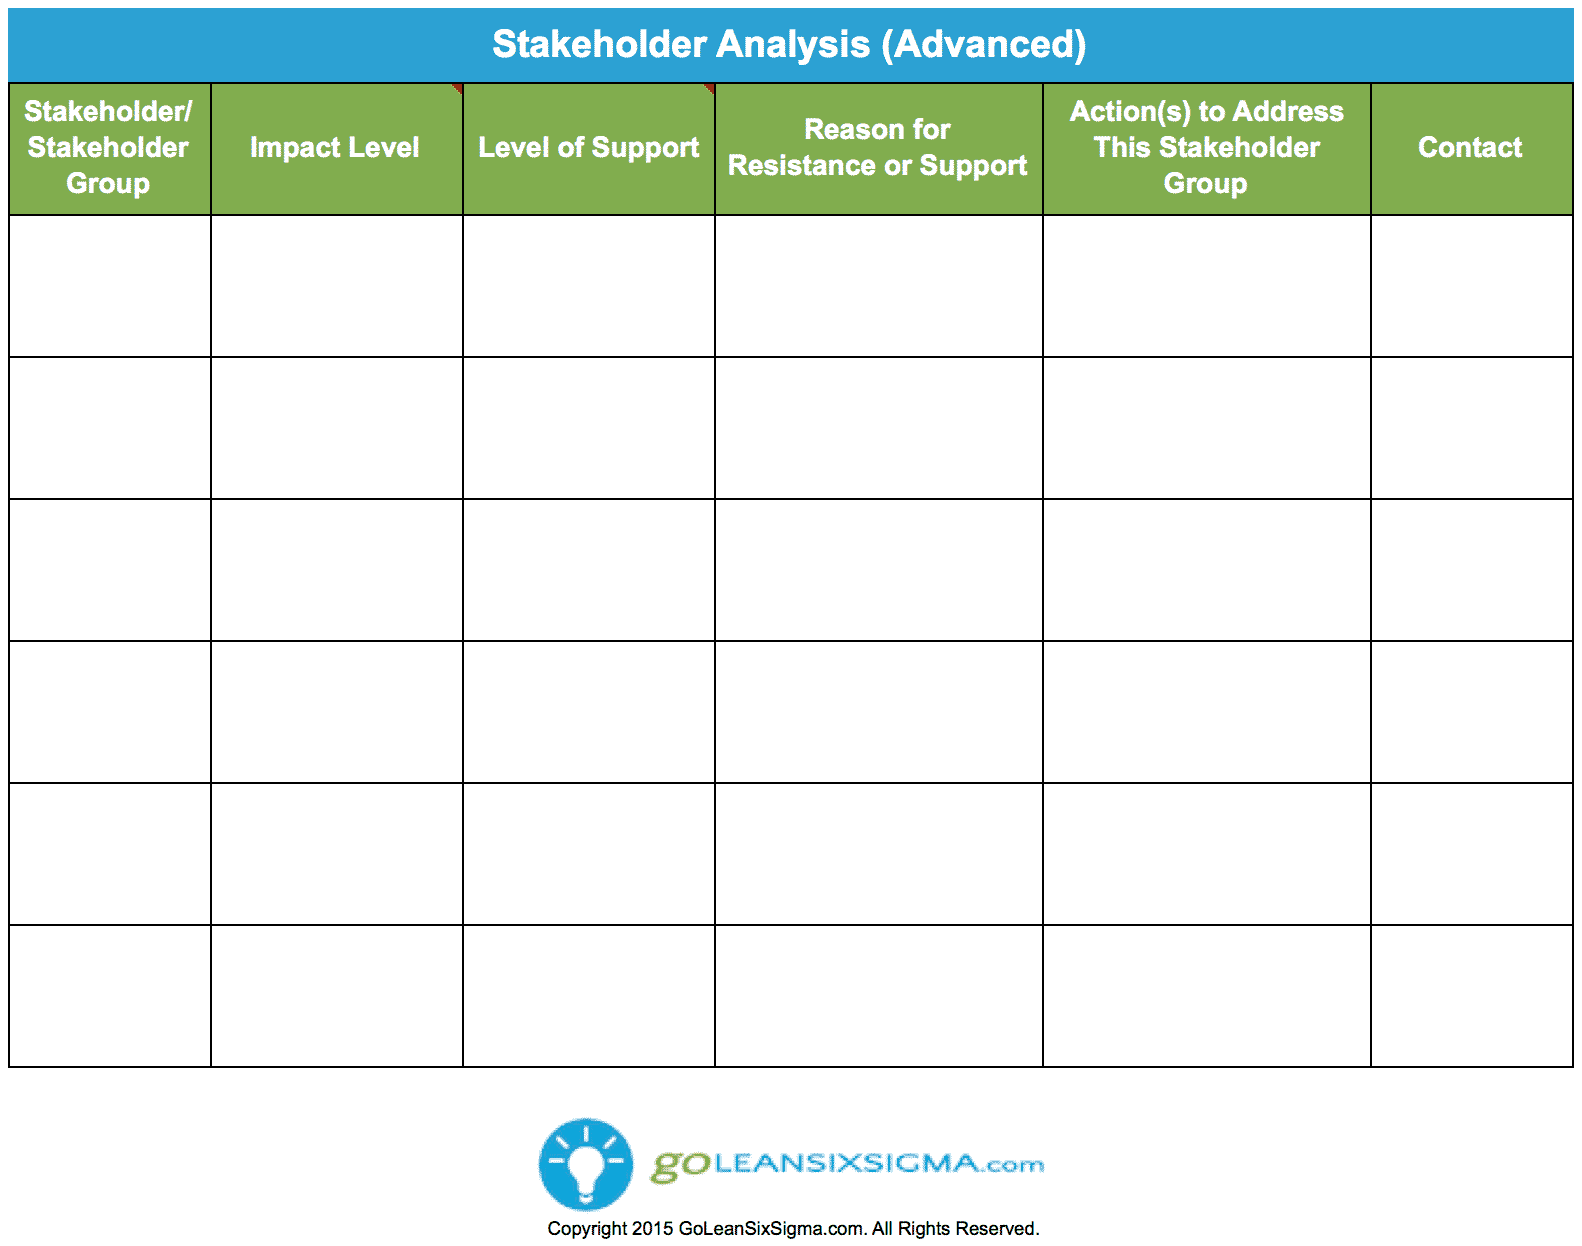 Stakeholder Analysis Advanced GoLeanSixSigmacom